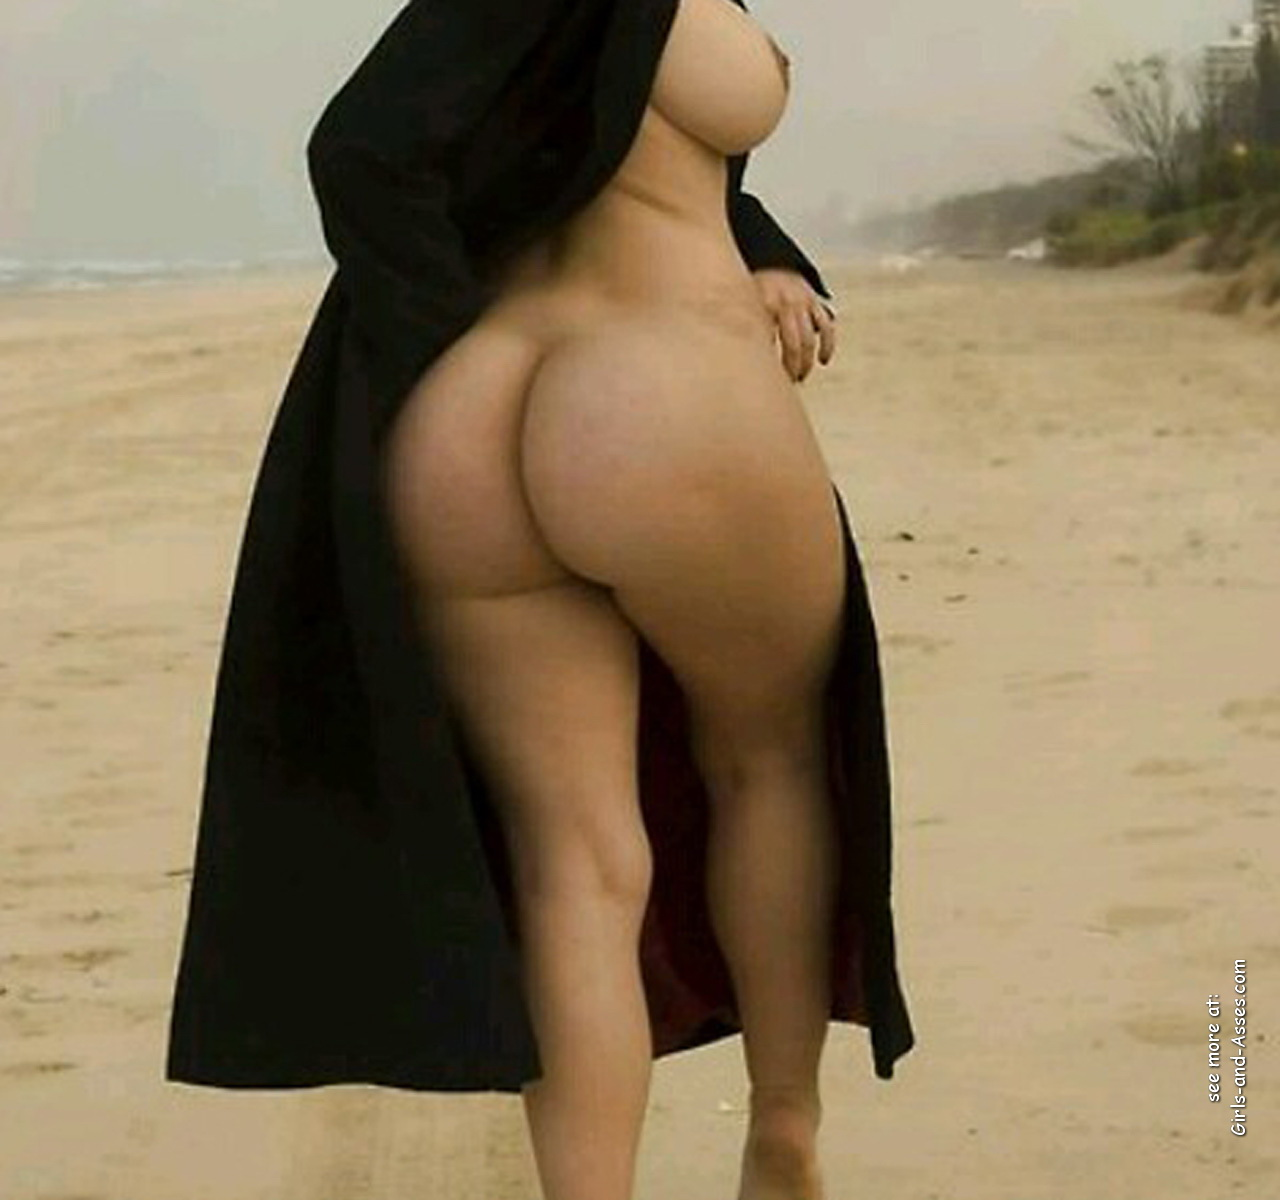 big booty naked women at the beach photo 01639